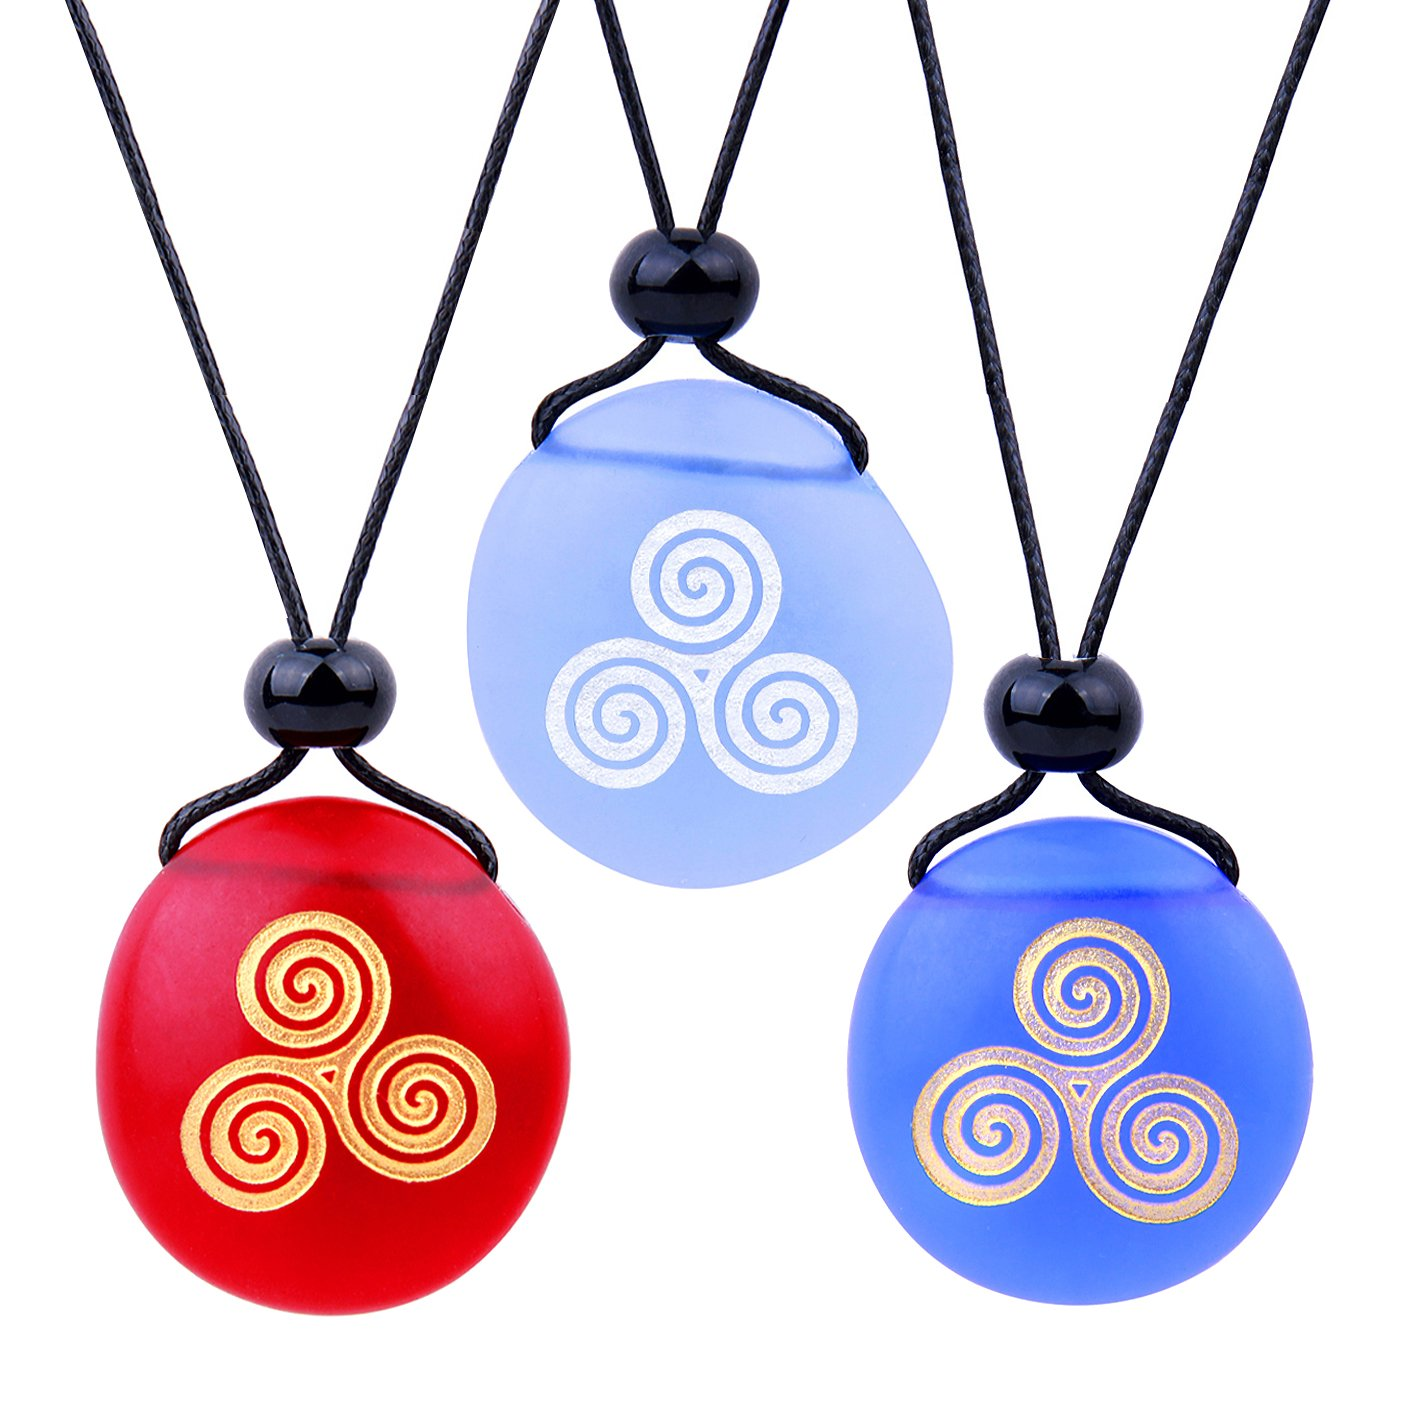 Frosted Sea Glass Stones Spirit of Life Goddess Knot Best Friends BFF Amulet Royal Sky Blue Red Necklaces